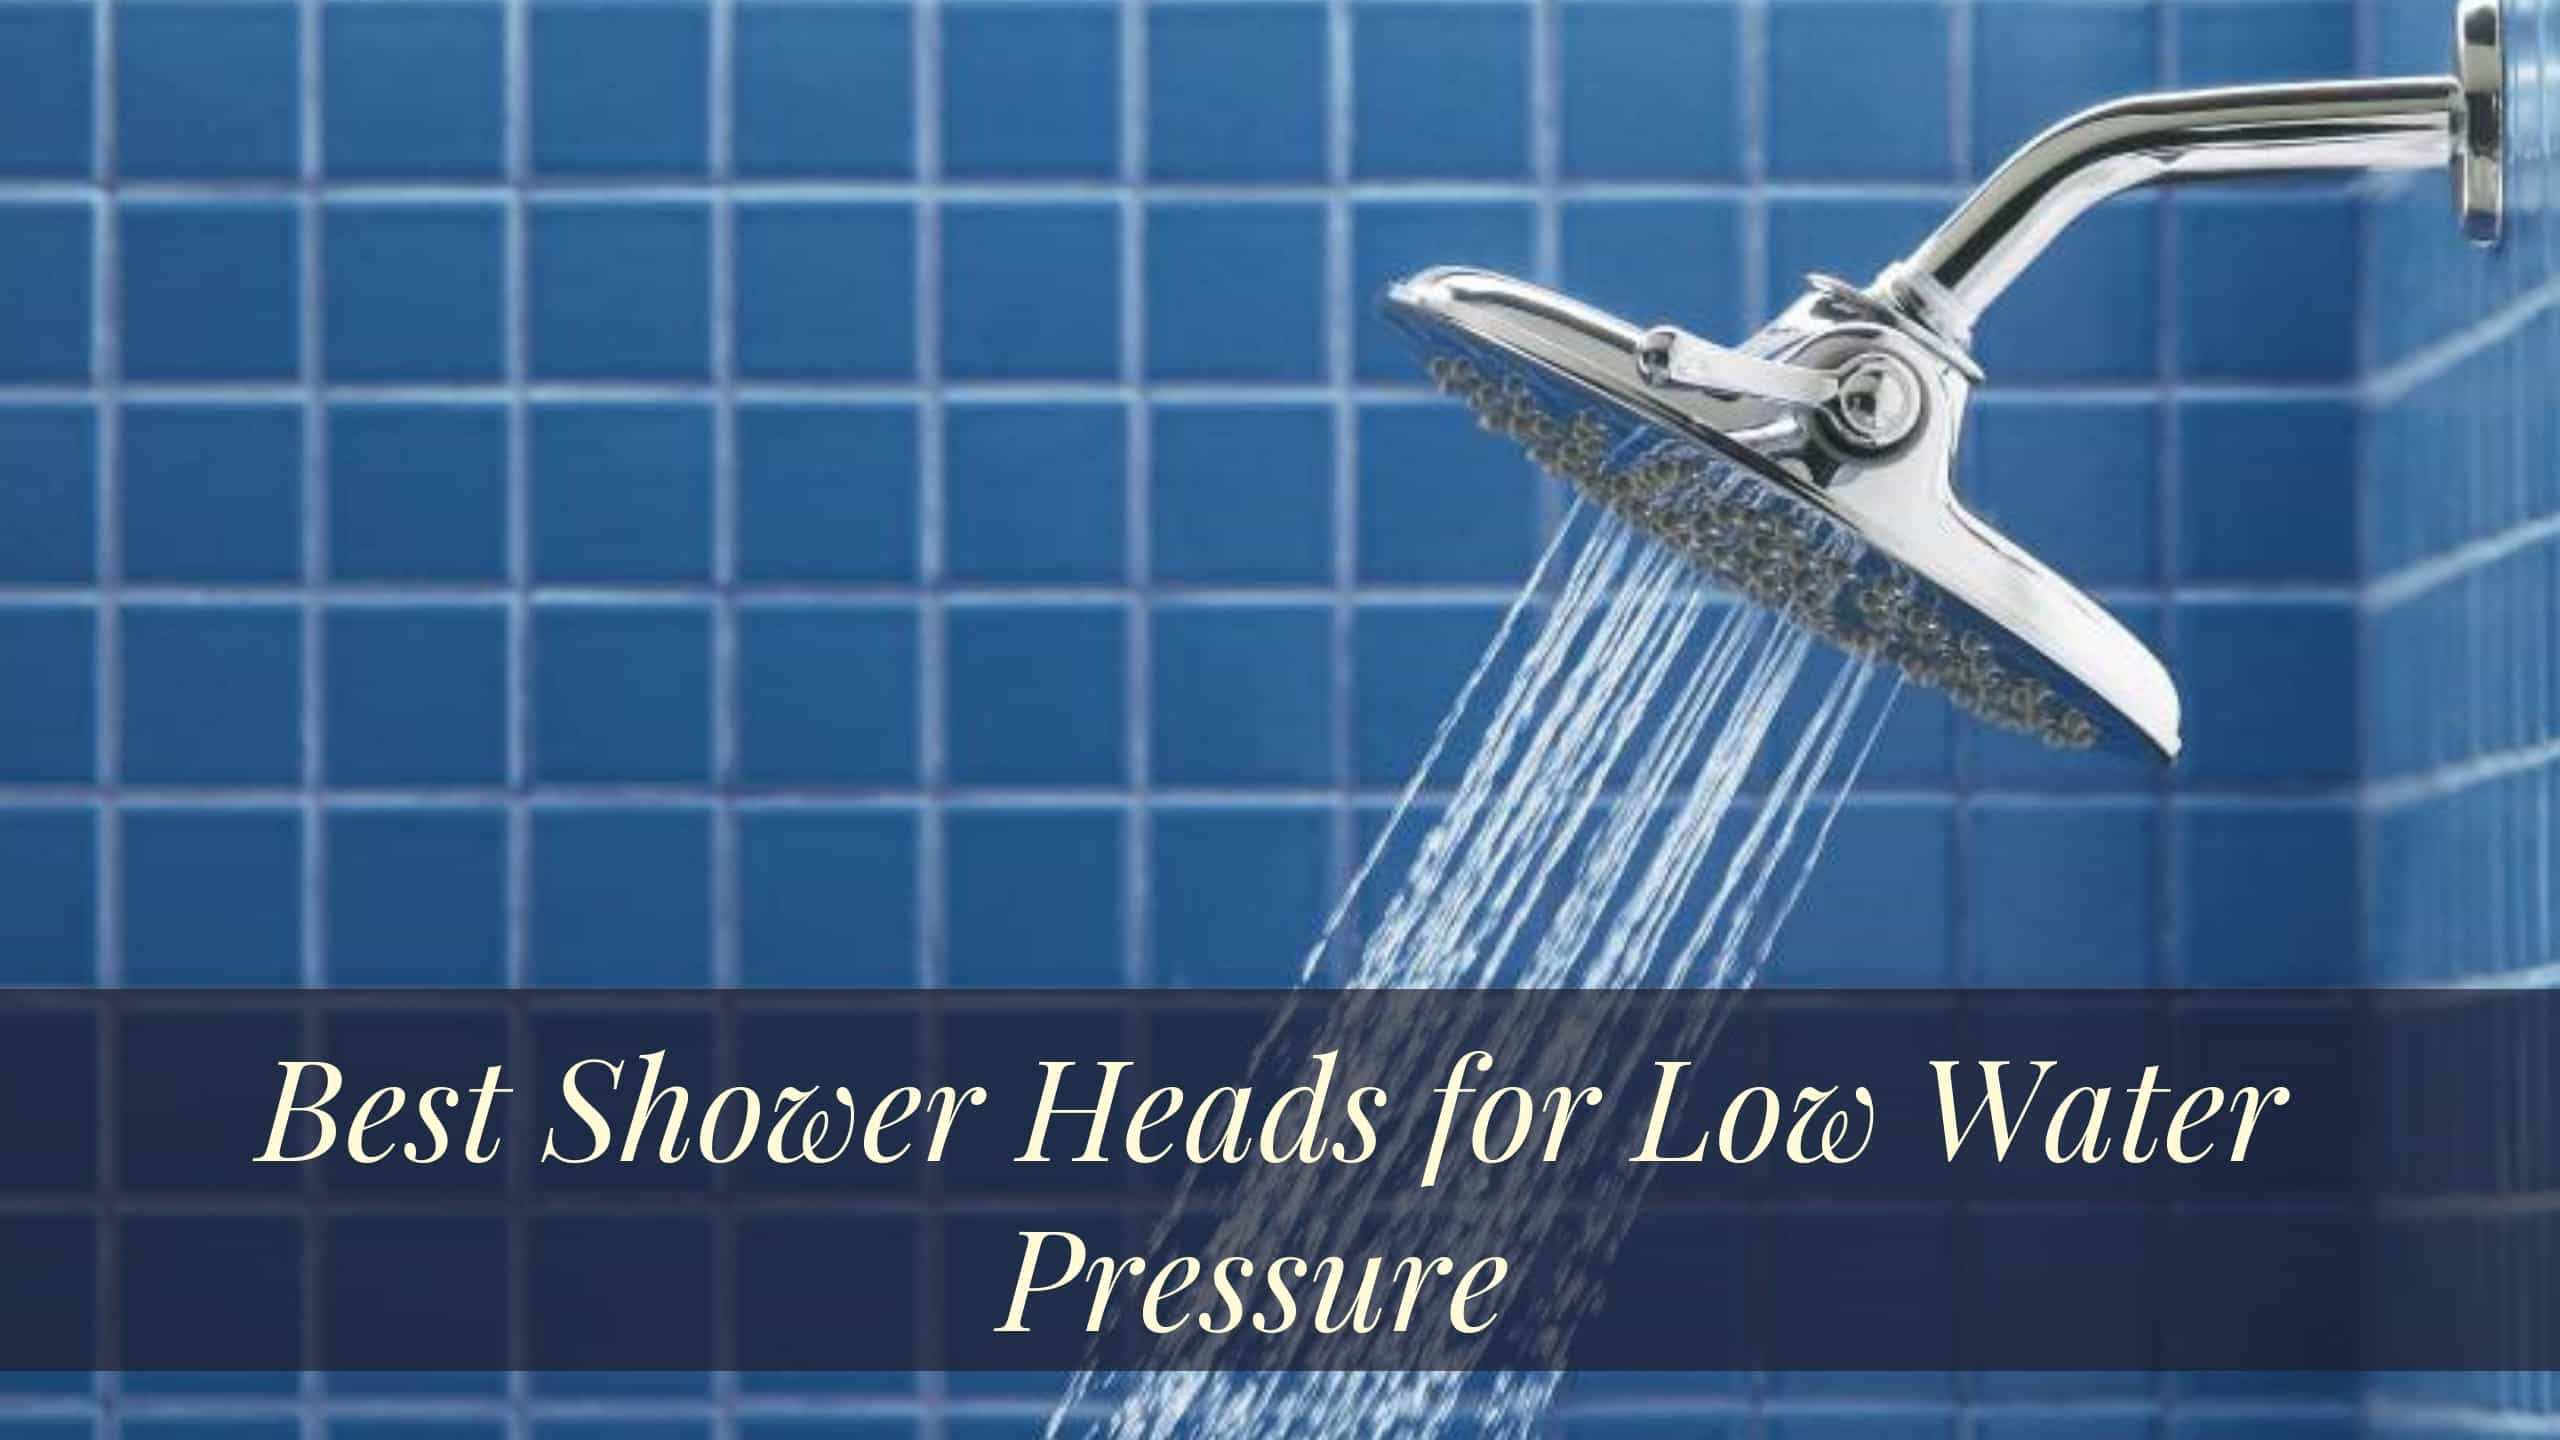 Best Shower Heads for Low Water Pressure